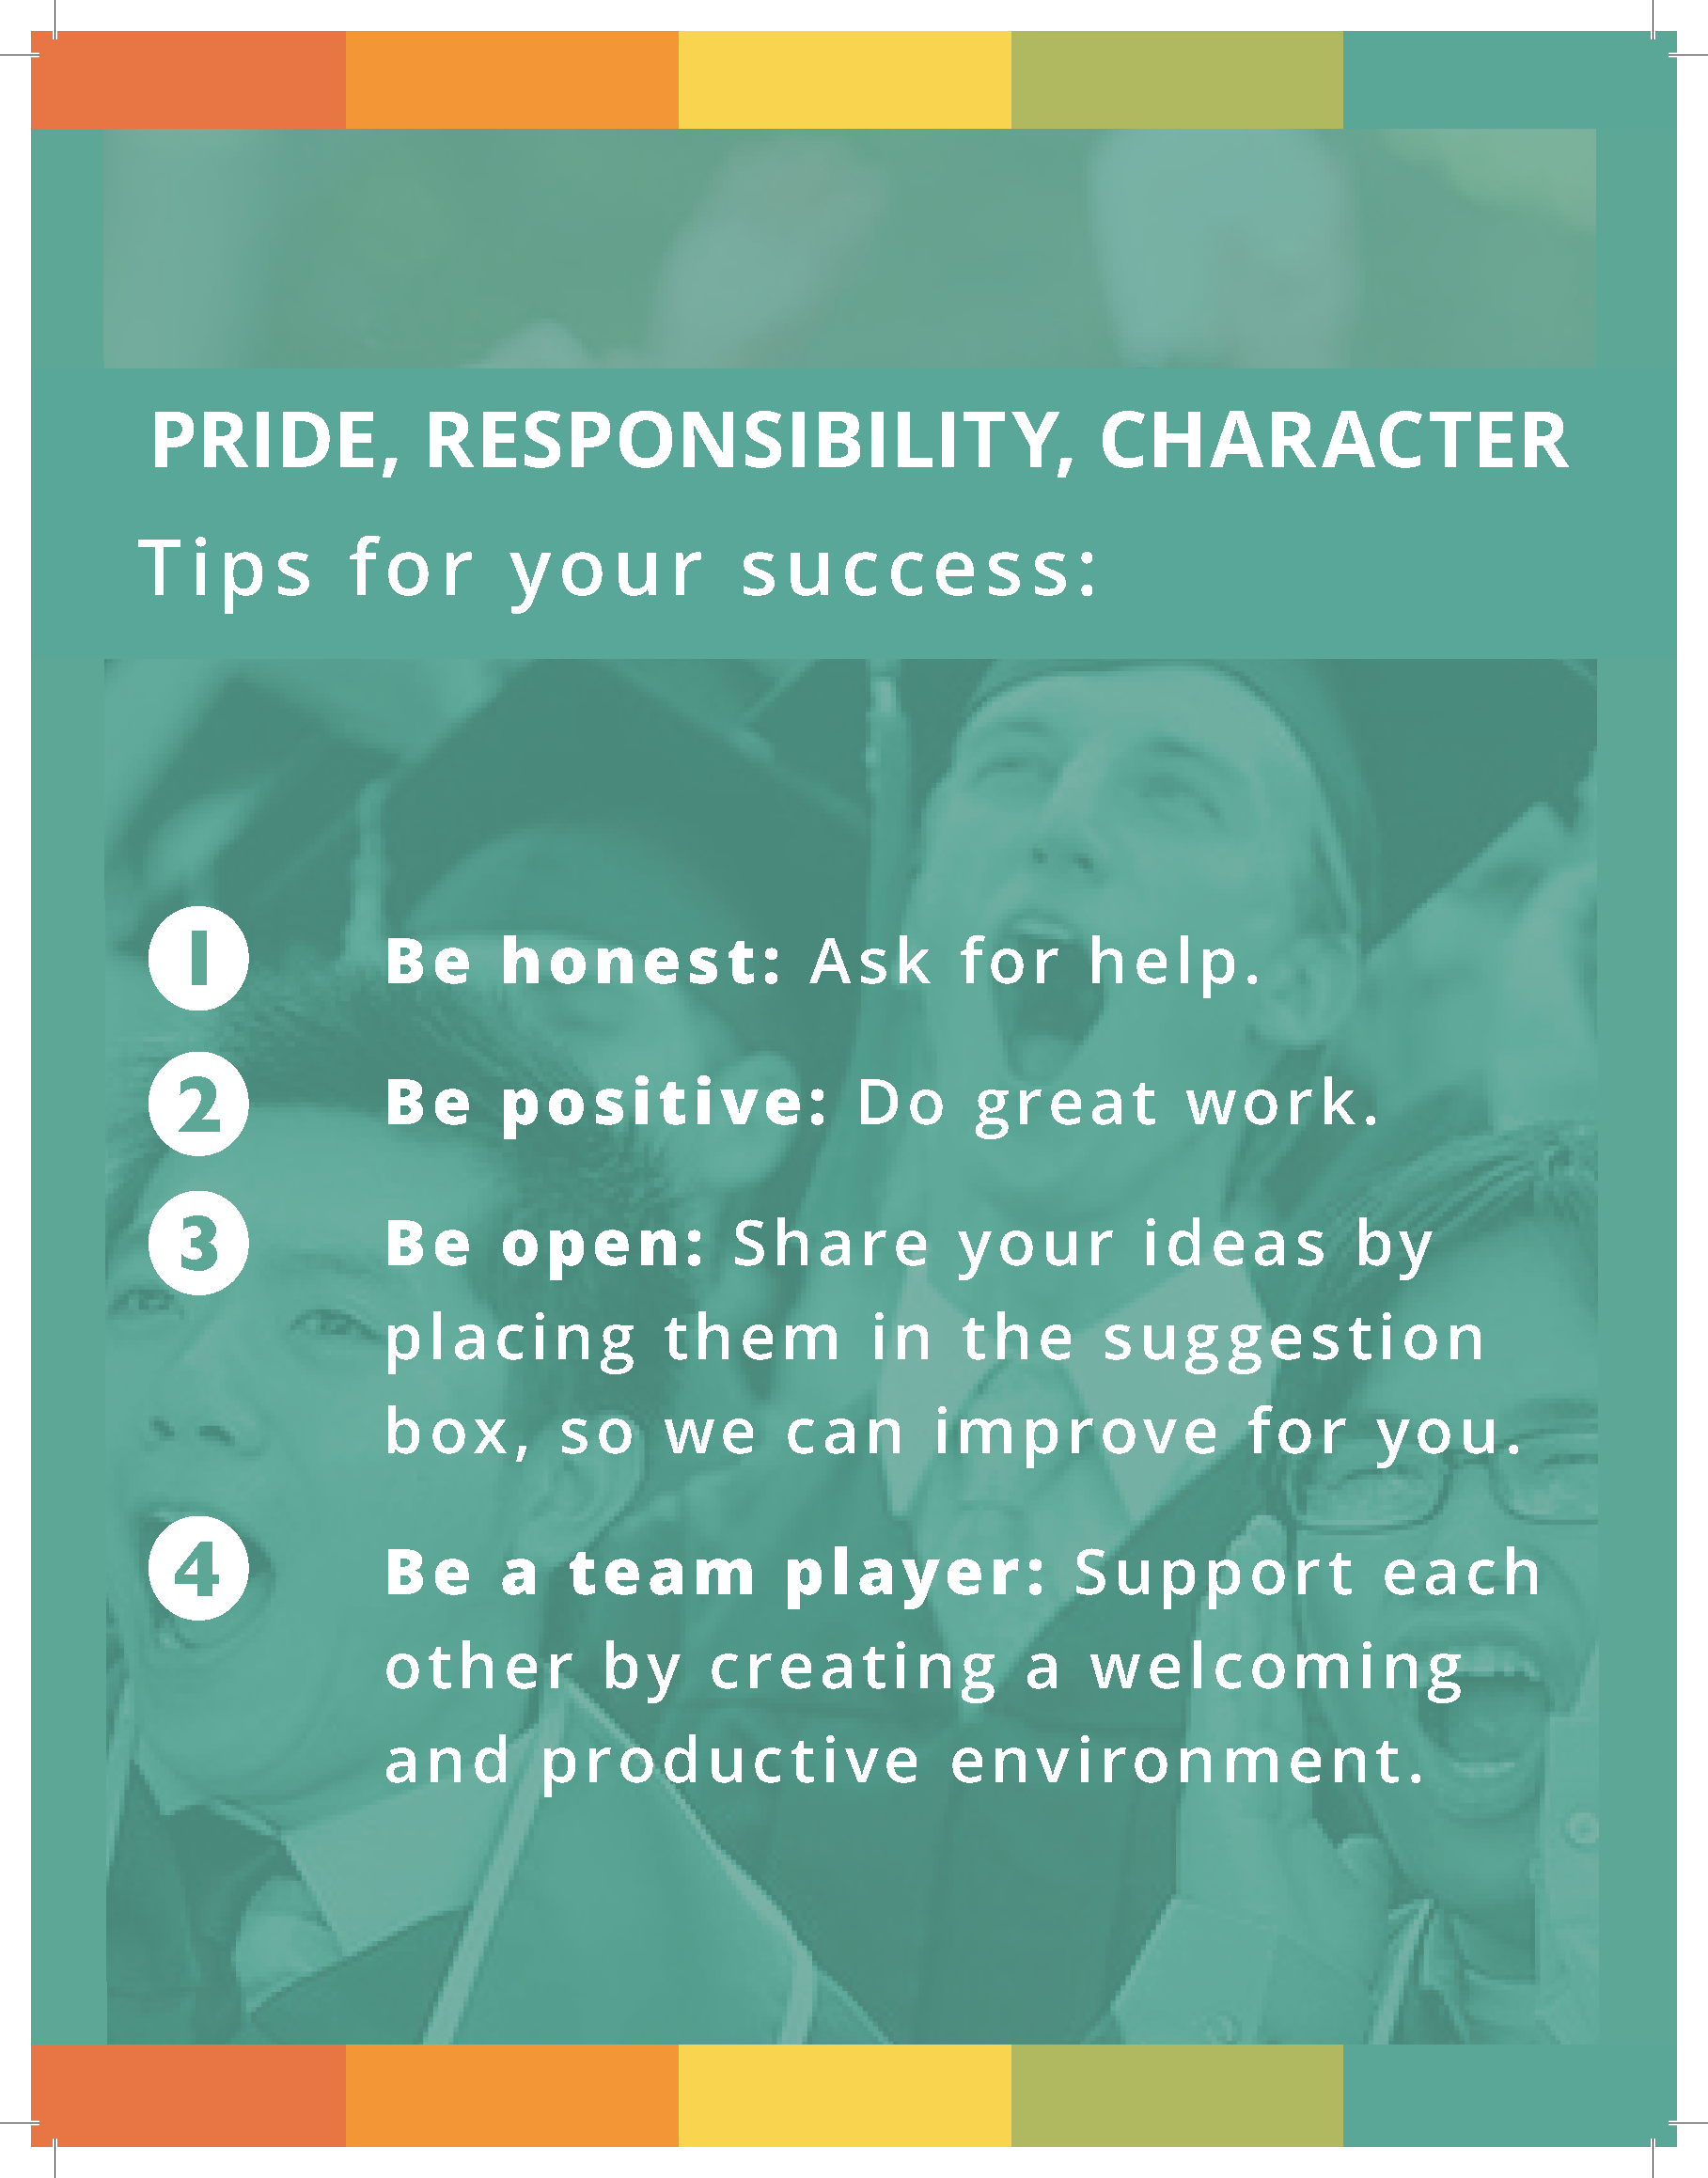 Pride, Responsibility, Character. Tips for your success: Be Honest: Ask for help. Be positive: Do great work. Be open: Share your ideas by placing them in the suggestion box, so we can improve for you. Be a team player: Support each other by creating a welcoming and productive environment.